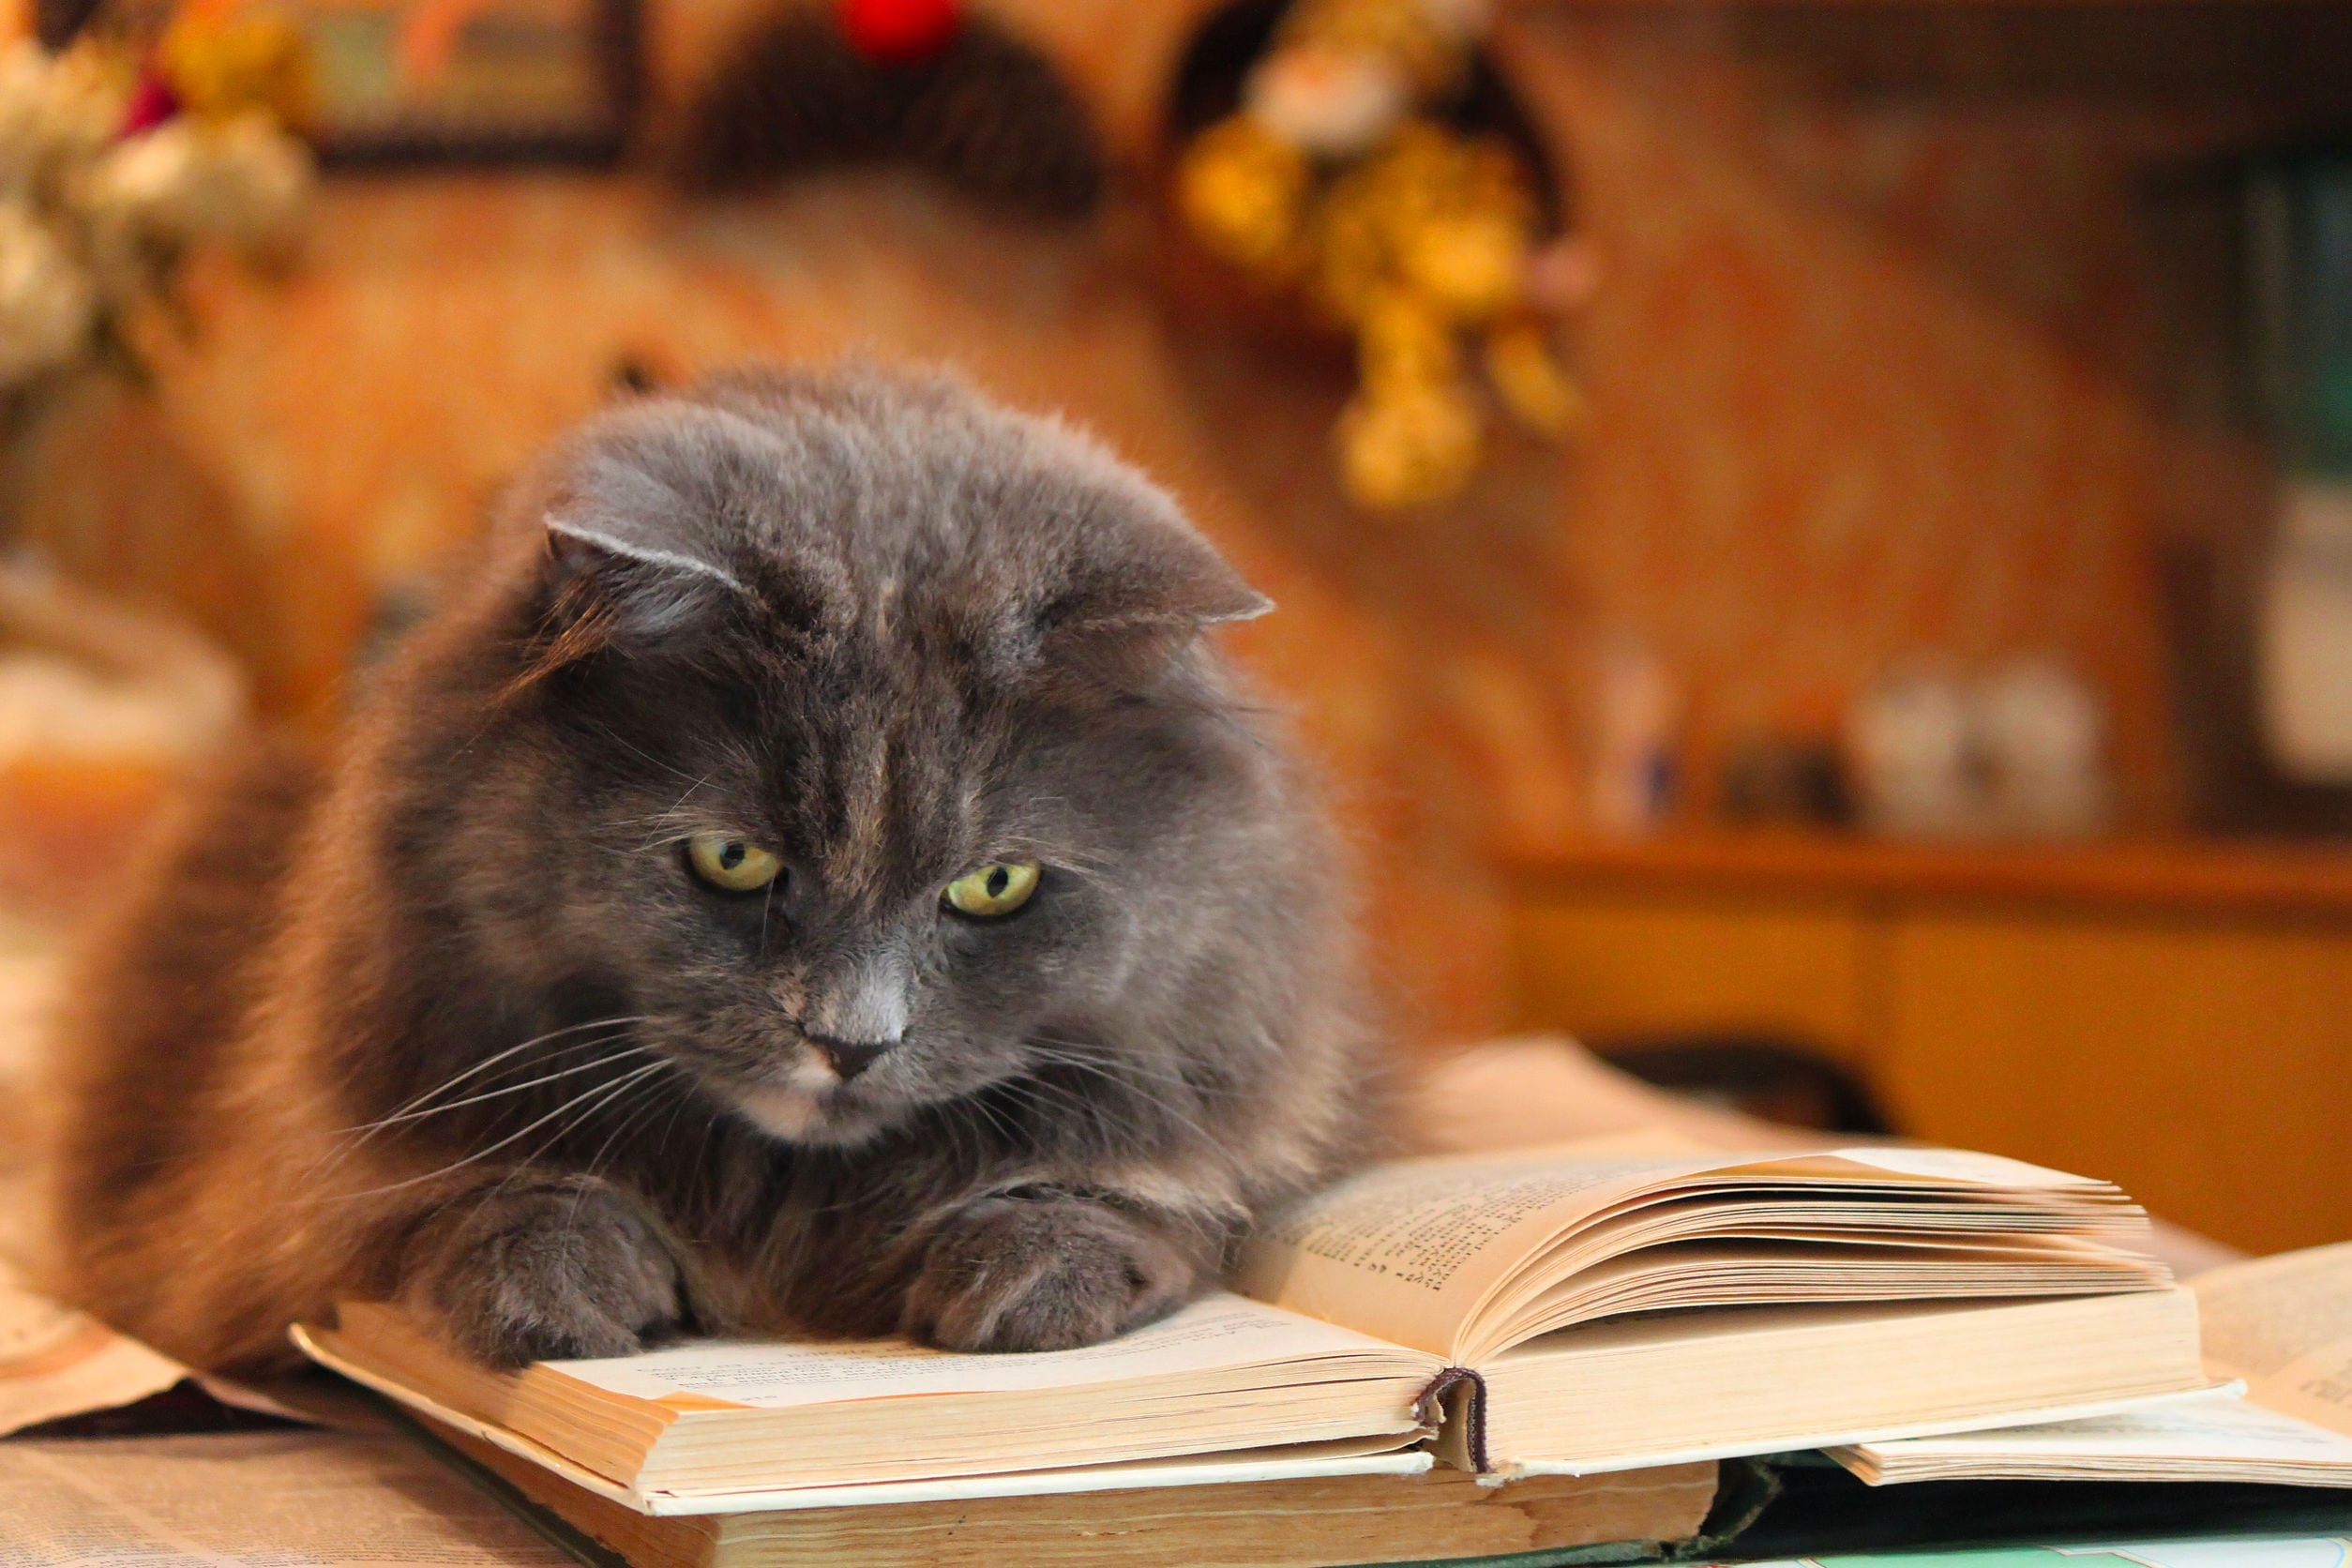 How to Make Your Cat Smarter